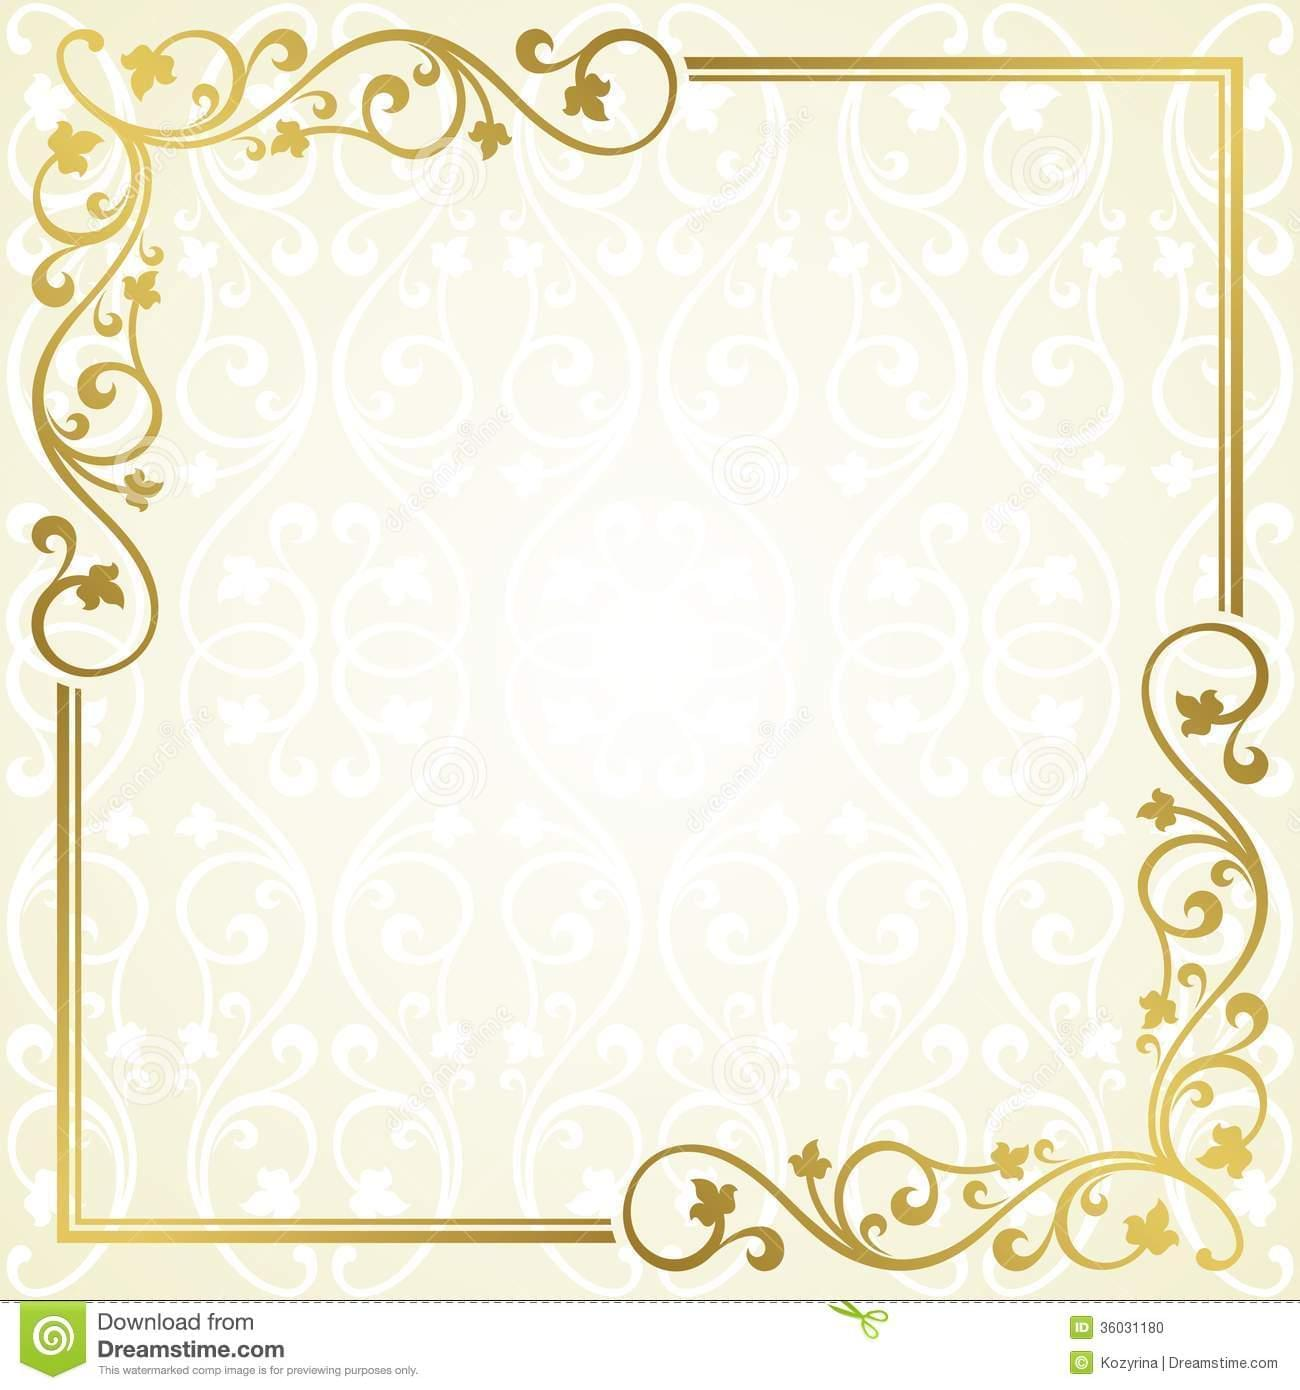 Sample Wedding Invitation Card: Exquisite Invitation Design By EdgyBrain On Envato Studio